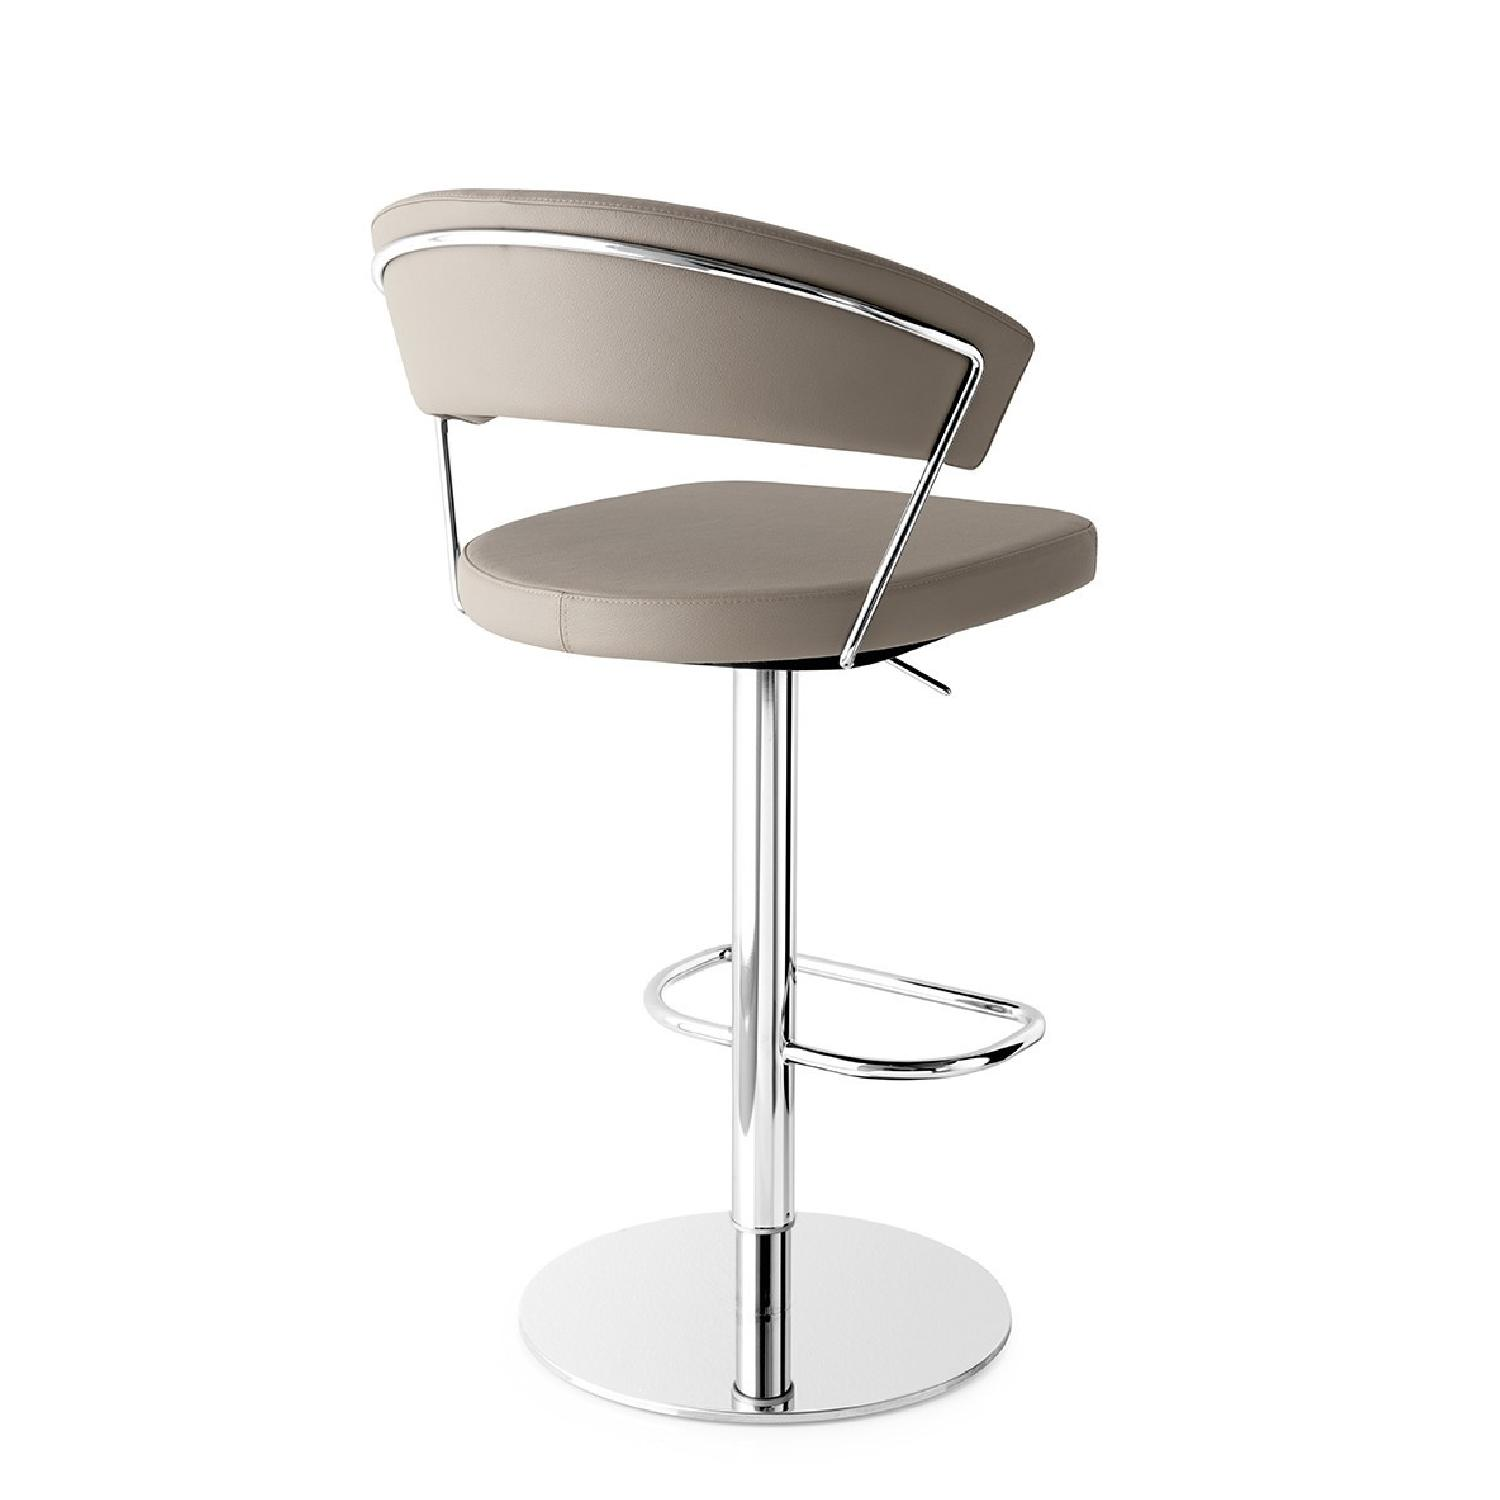 Calligaris Grey Leather Adjustable Stools w/ Backrest - image-4